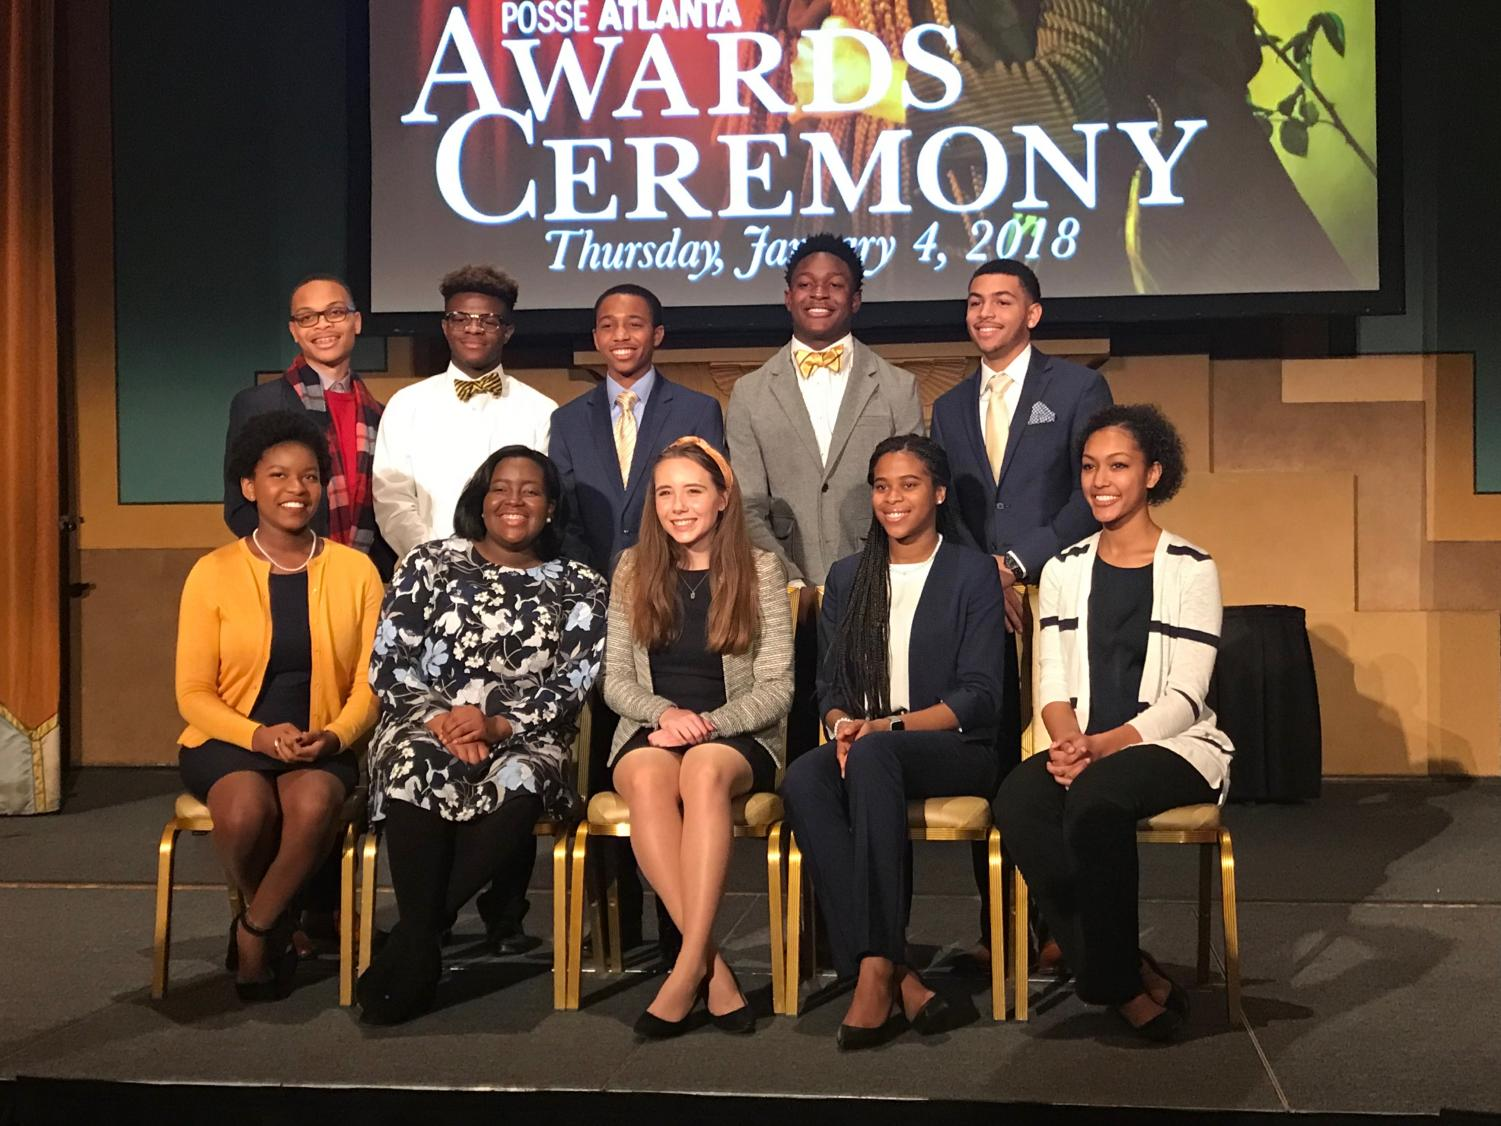 """Senior Jayden Bourne (pictured in top row on the right) takes pictures with his fellow Posse Scholars at the acceptance reception ceremony. """"Being able to attend this reception was a dream come true knowing that I finally achieved what I set my sights on at the beginning of the year,"""" Bourne said."""